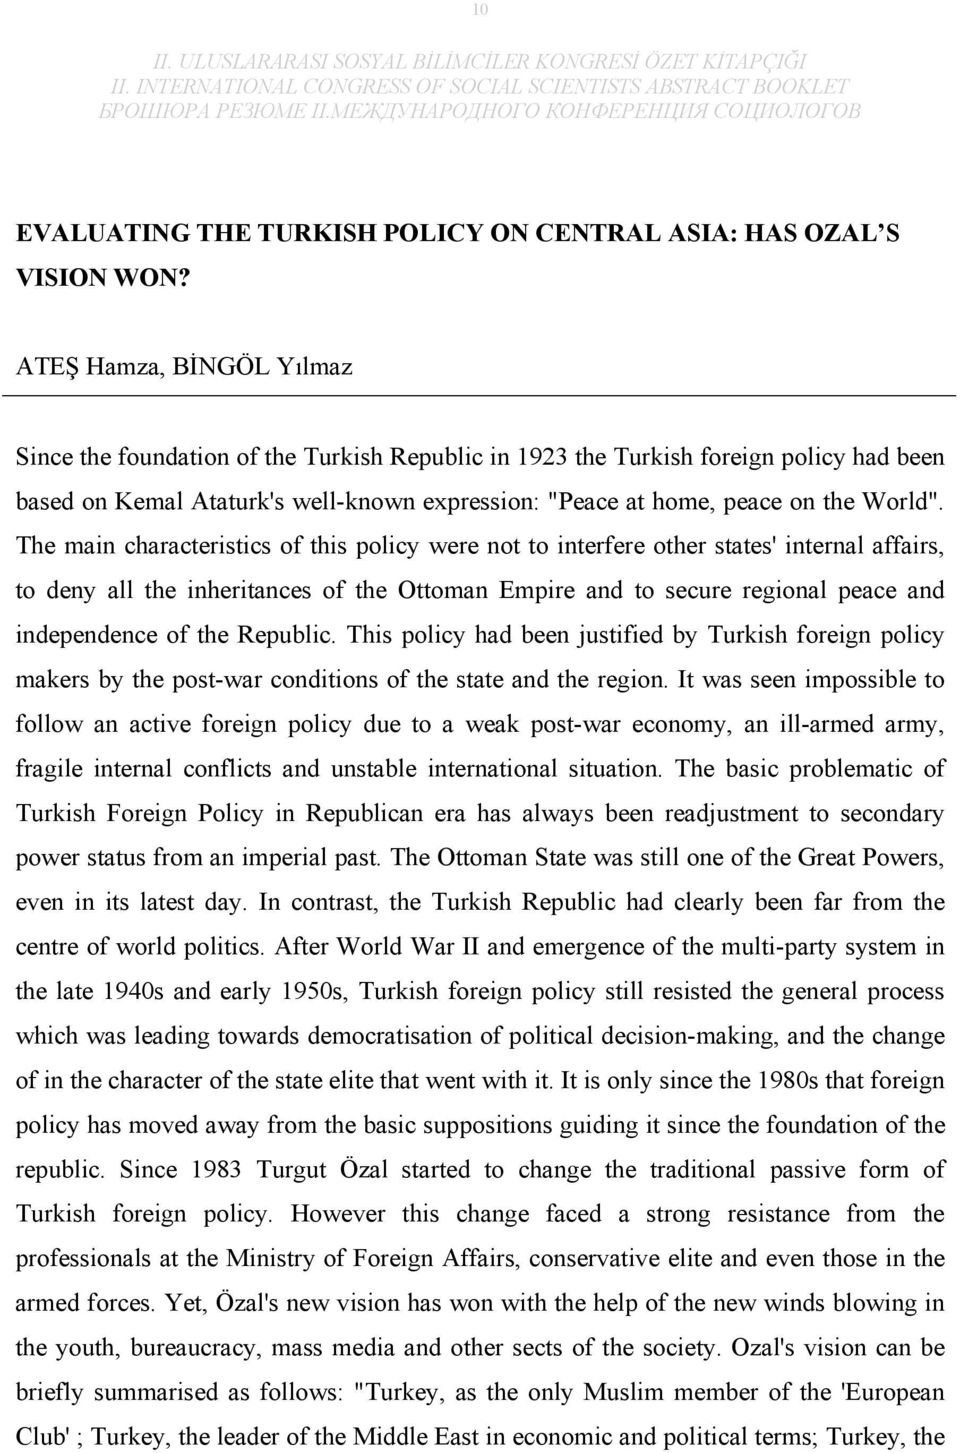 The main characteristics of this policy were not to interfere other states' internal affairs, to deny all the inheritances of the Ottoman Empire and to secure regional peace and independence of the